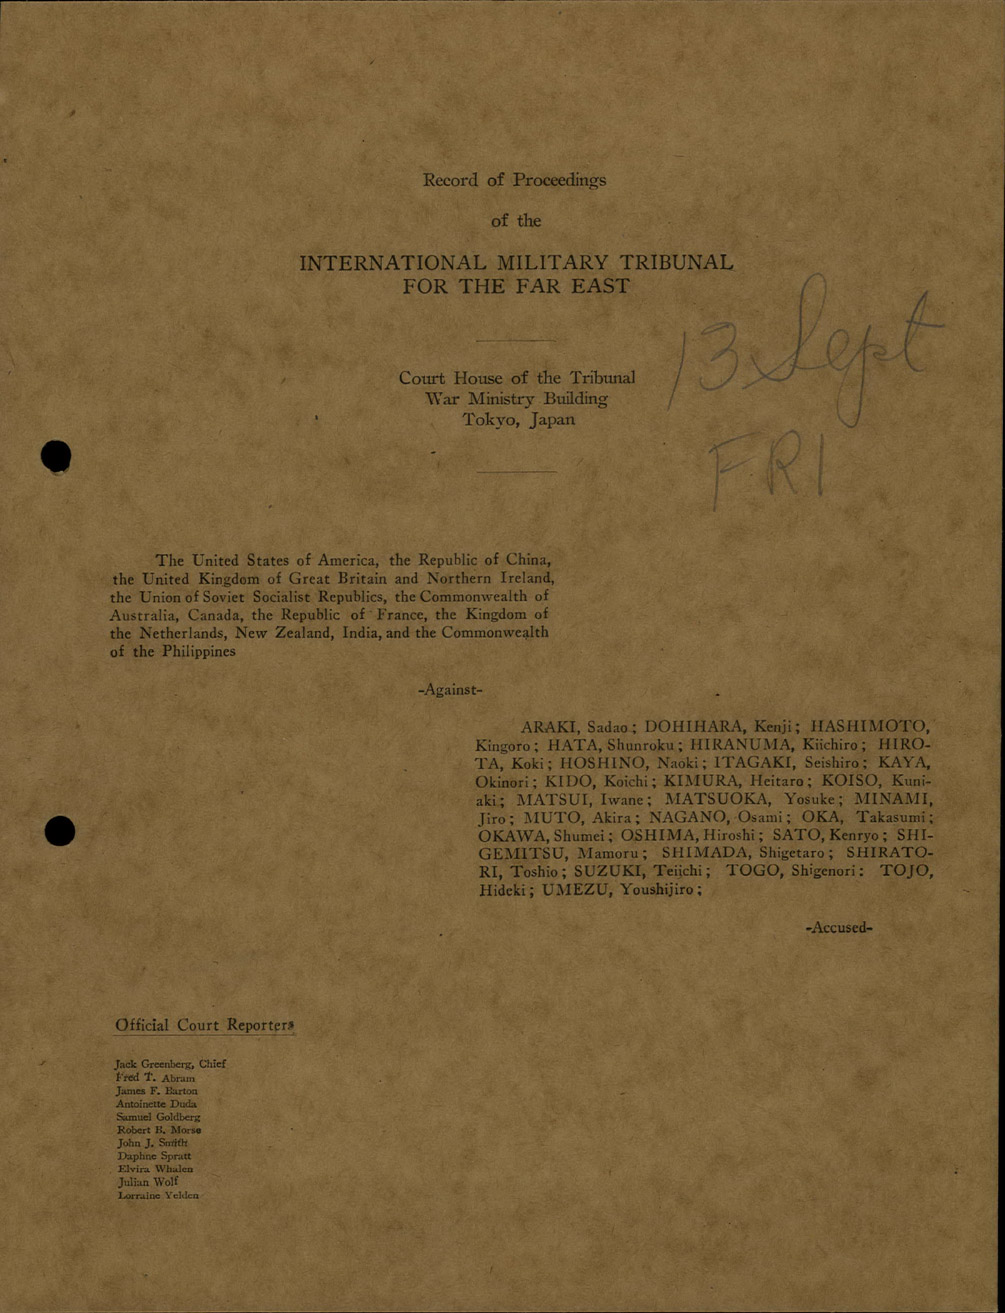 the international military tribunal for the far east Bibliography of materials at marquette law library that relate to the international military tribunal for the far east / tokyo war crimes trials.